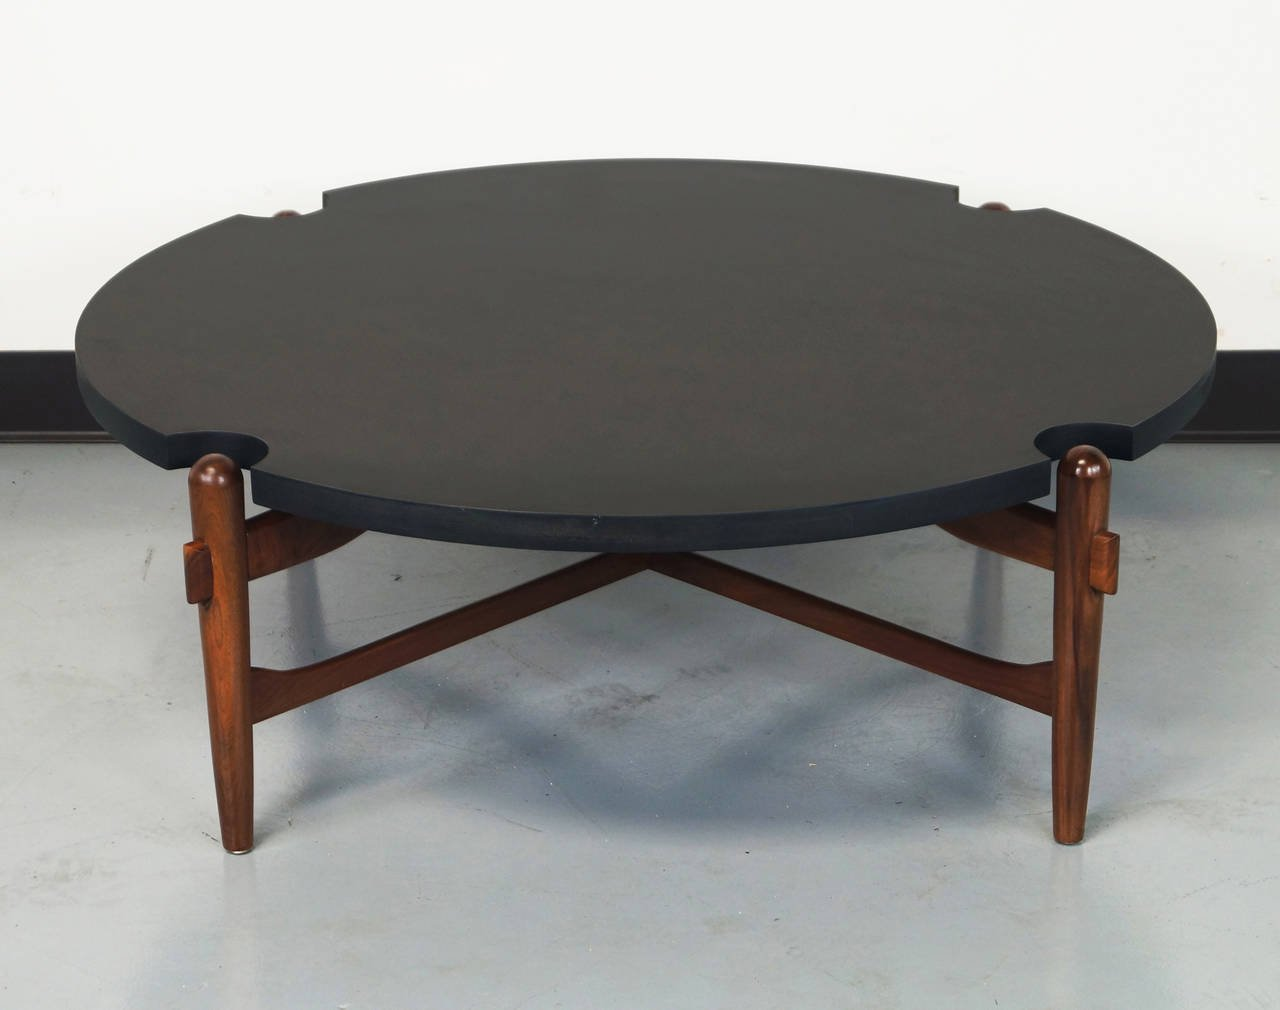 Swell Midcentury Coffee Table Attributed To Greta Grossman Gmtry Best Dining Table And Chair Ideas Images Gmtryco